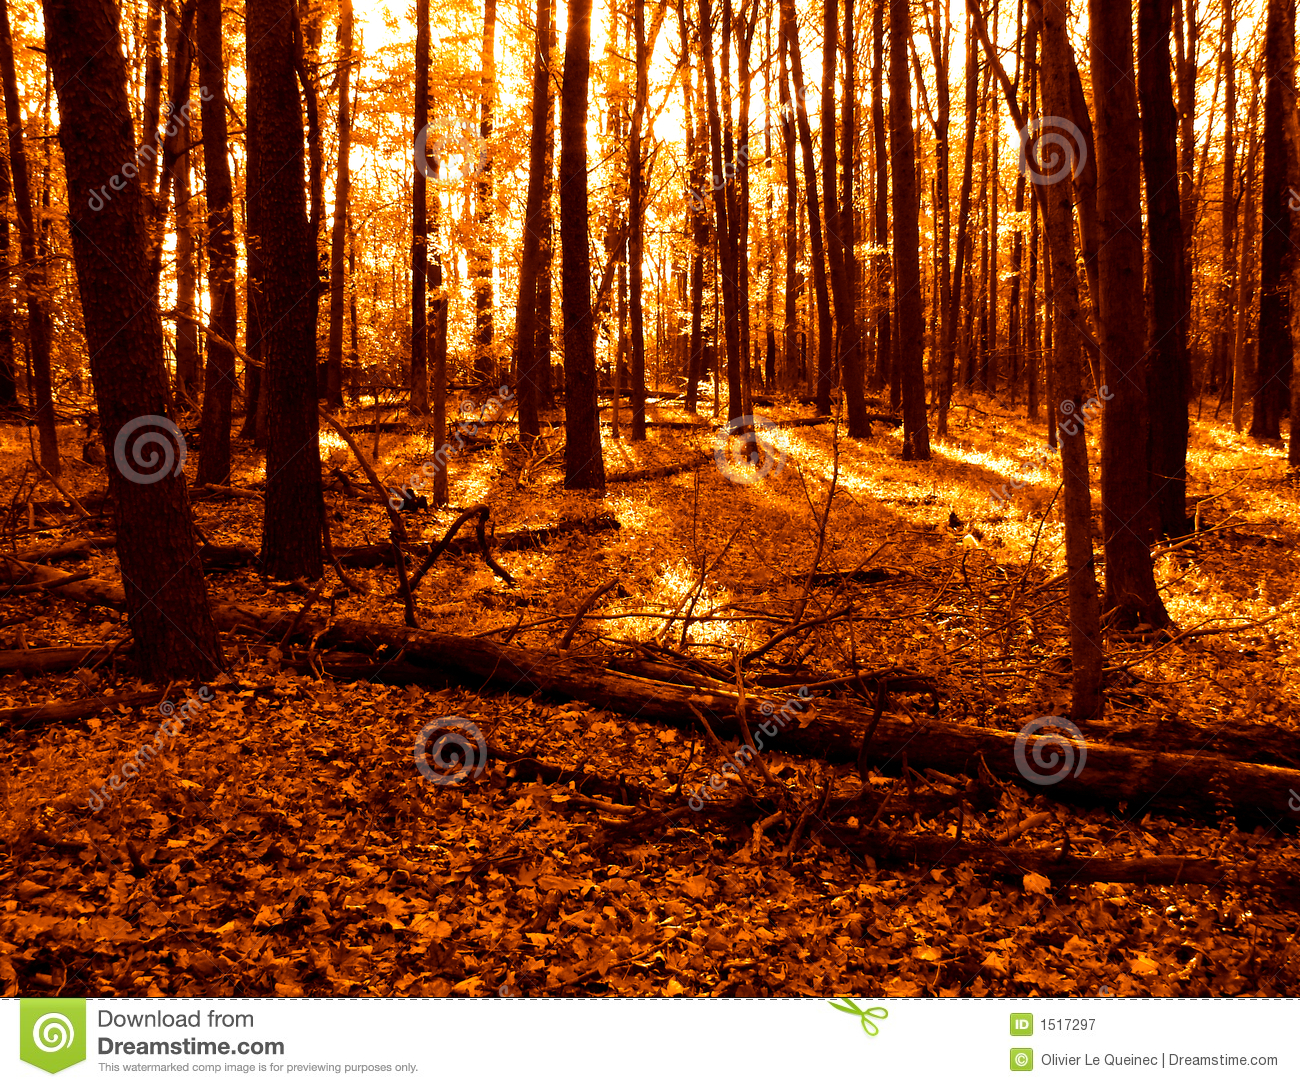 Royalty Free Stock Photography: Warm Colors Woods and Fall Leaves in ...: www.dreamstime.com/royalty-free-stock-photography-warm-colors-woods...